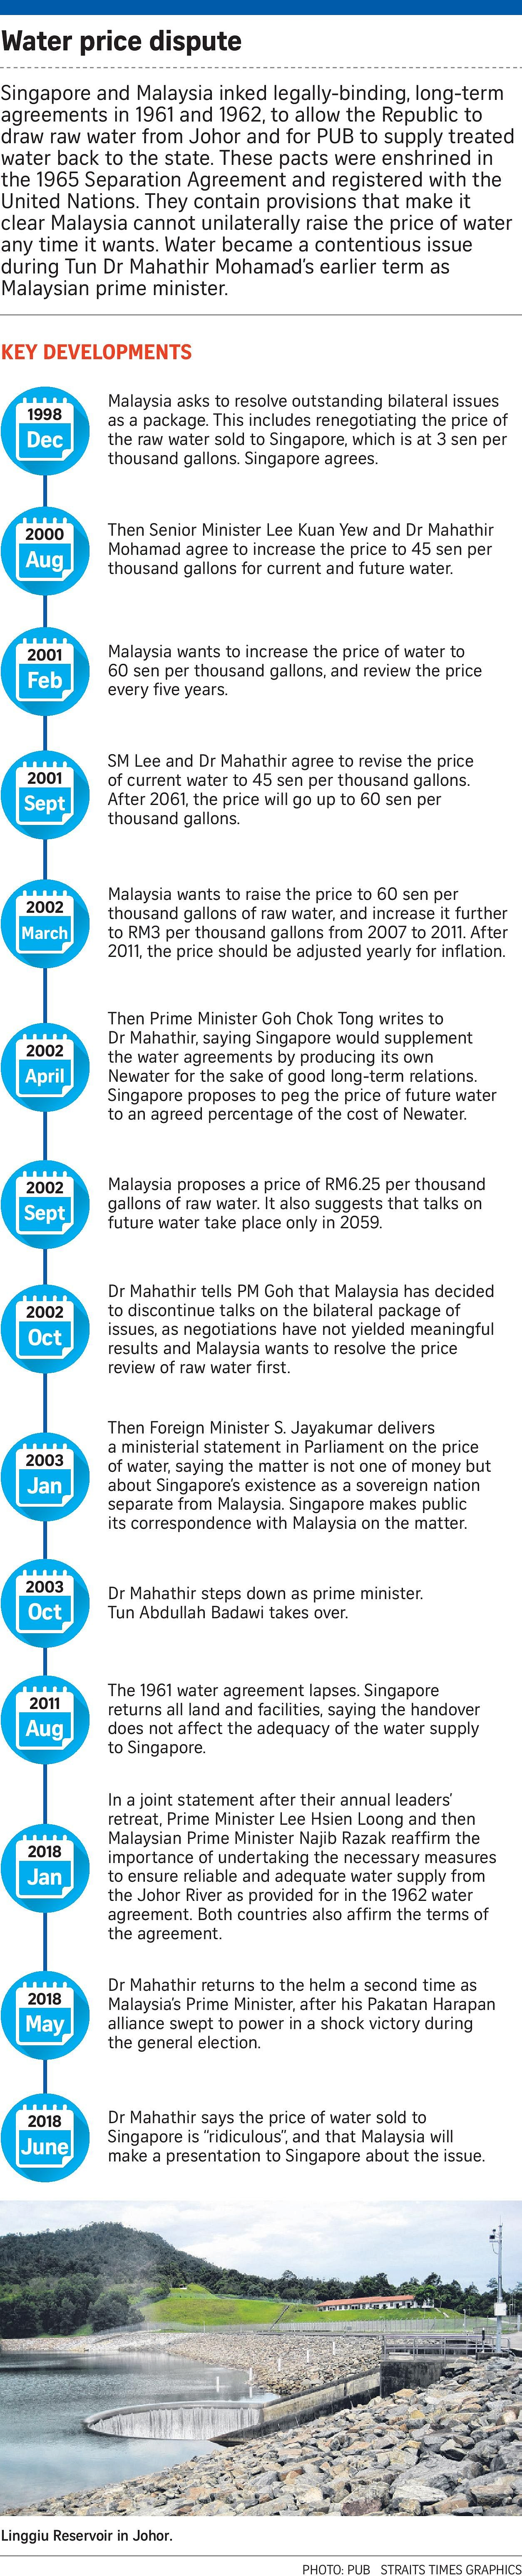 Singapore Malaysia Must Comply Fully With 1962 Water Agreement